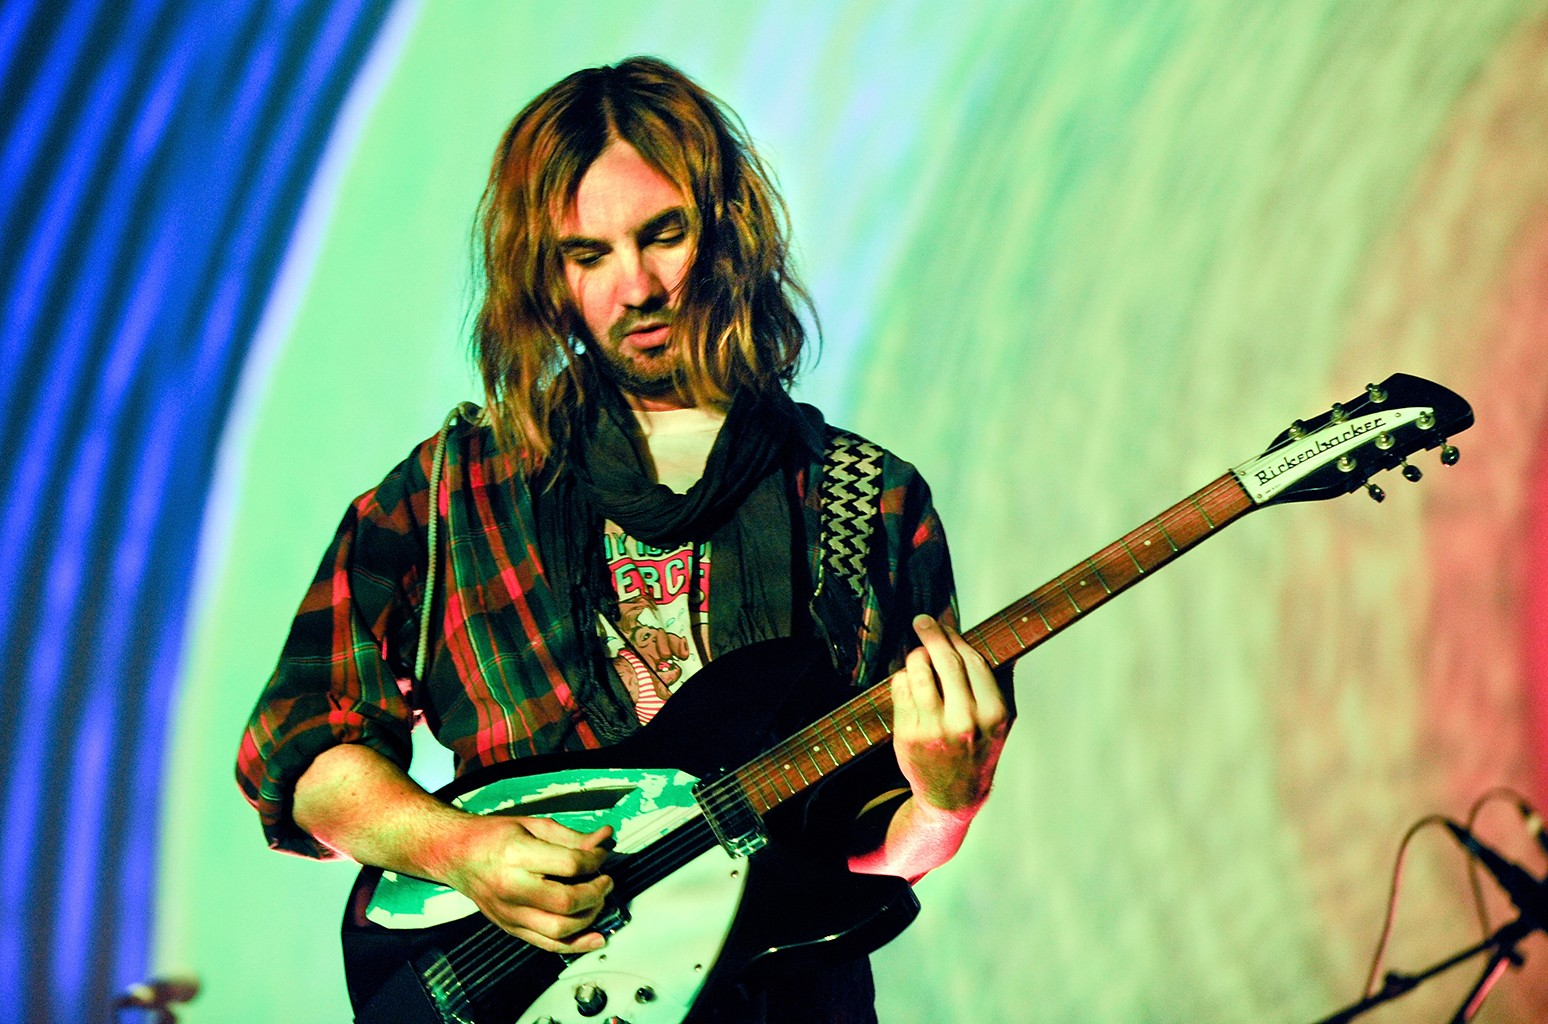 Kevin Parker of Tame Impala, 2016